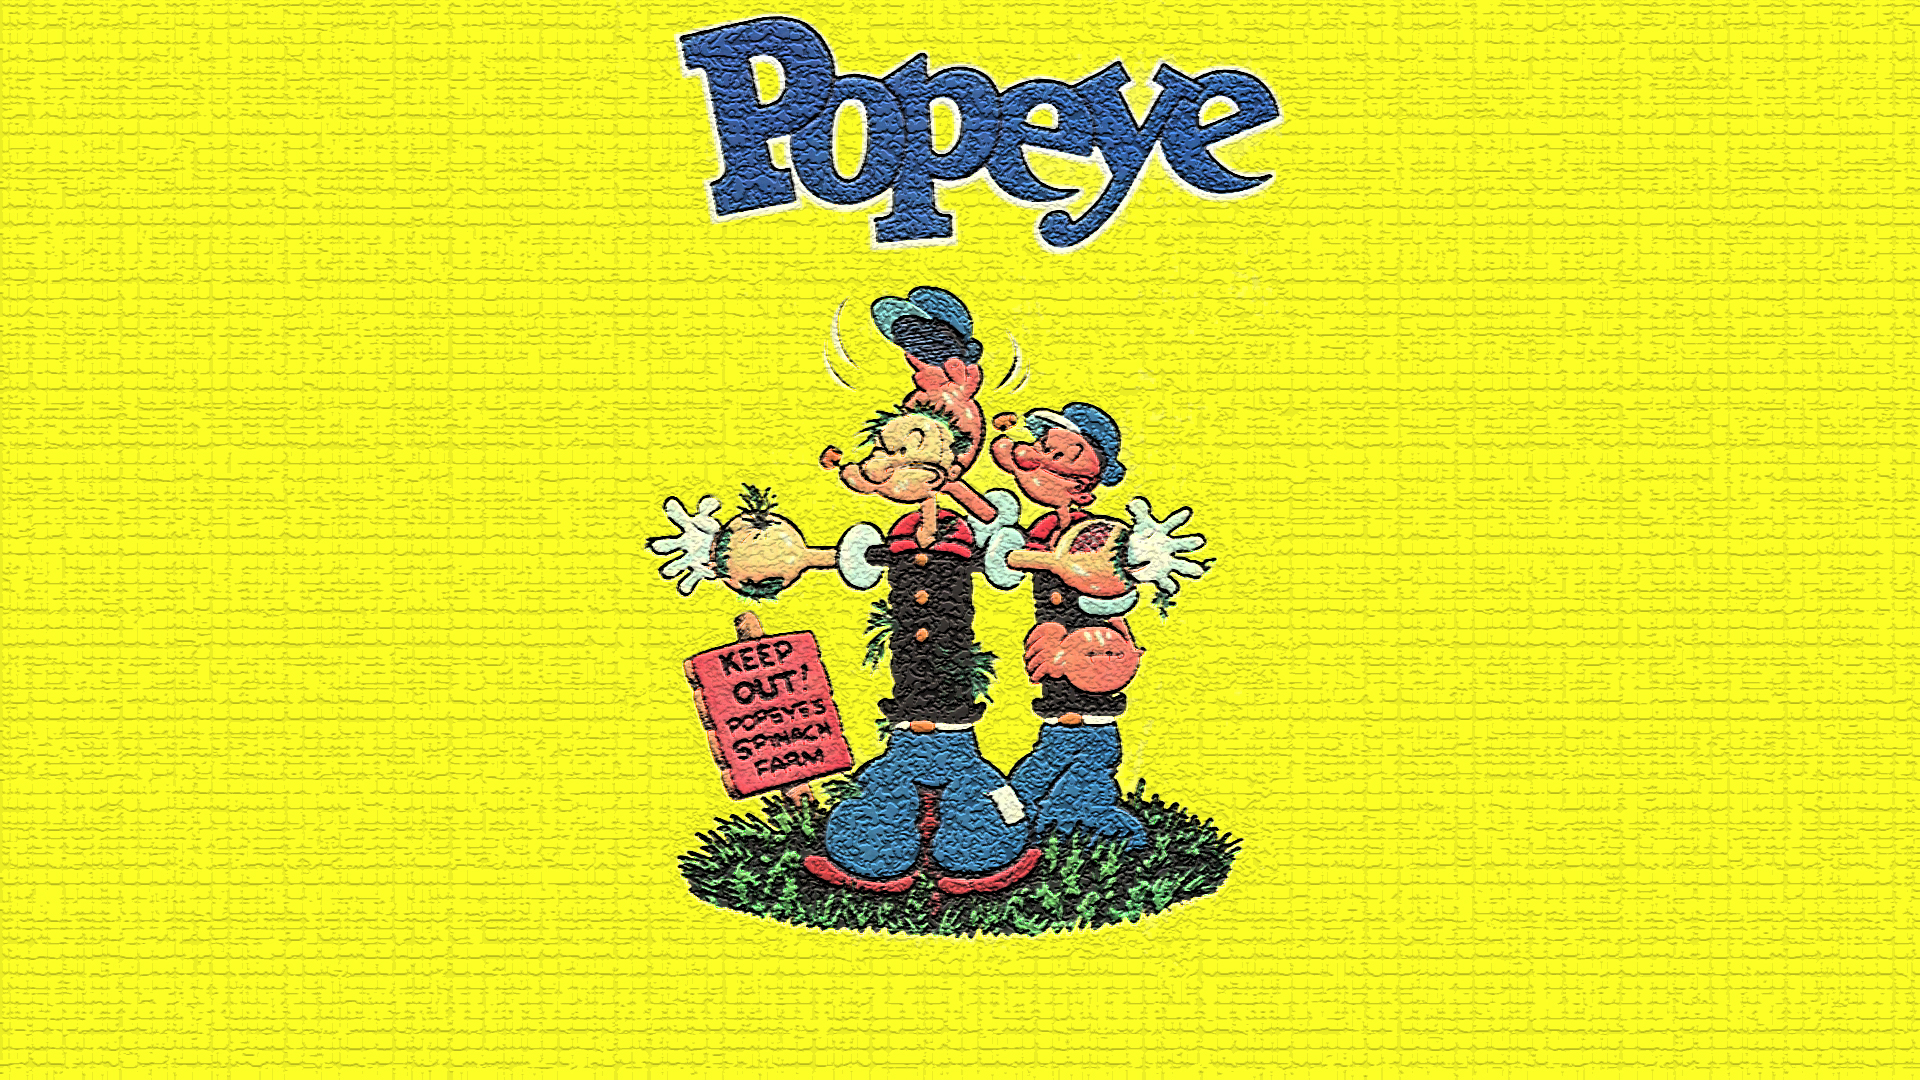 popeye wallpapers for iphone